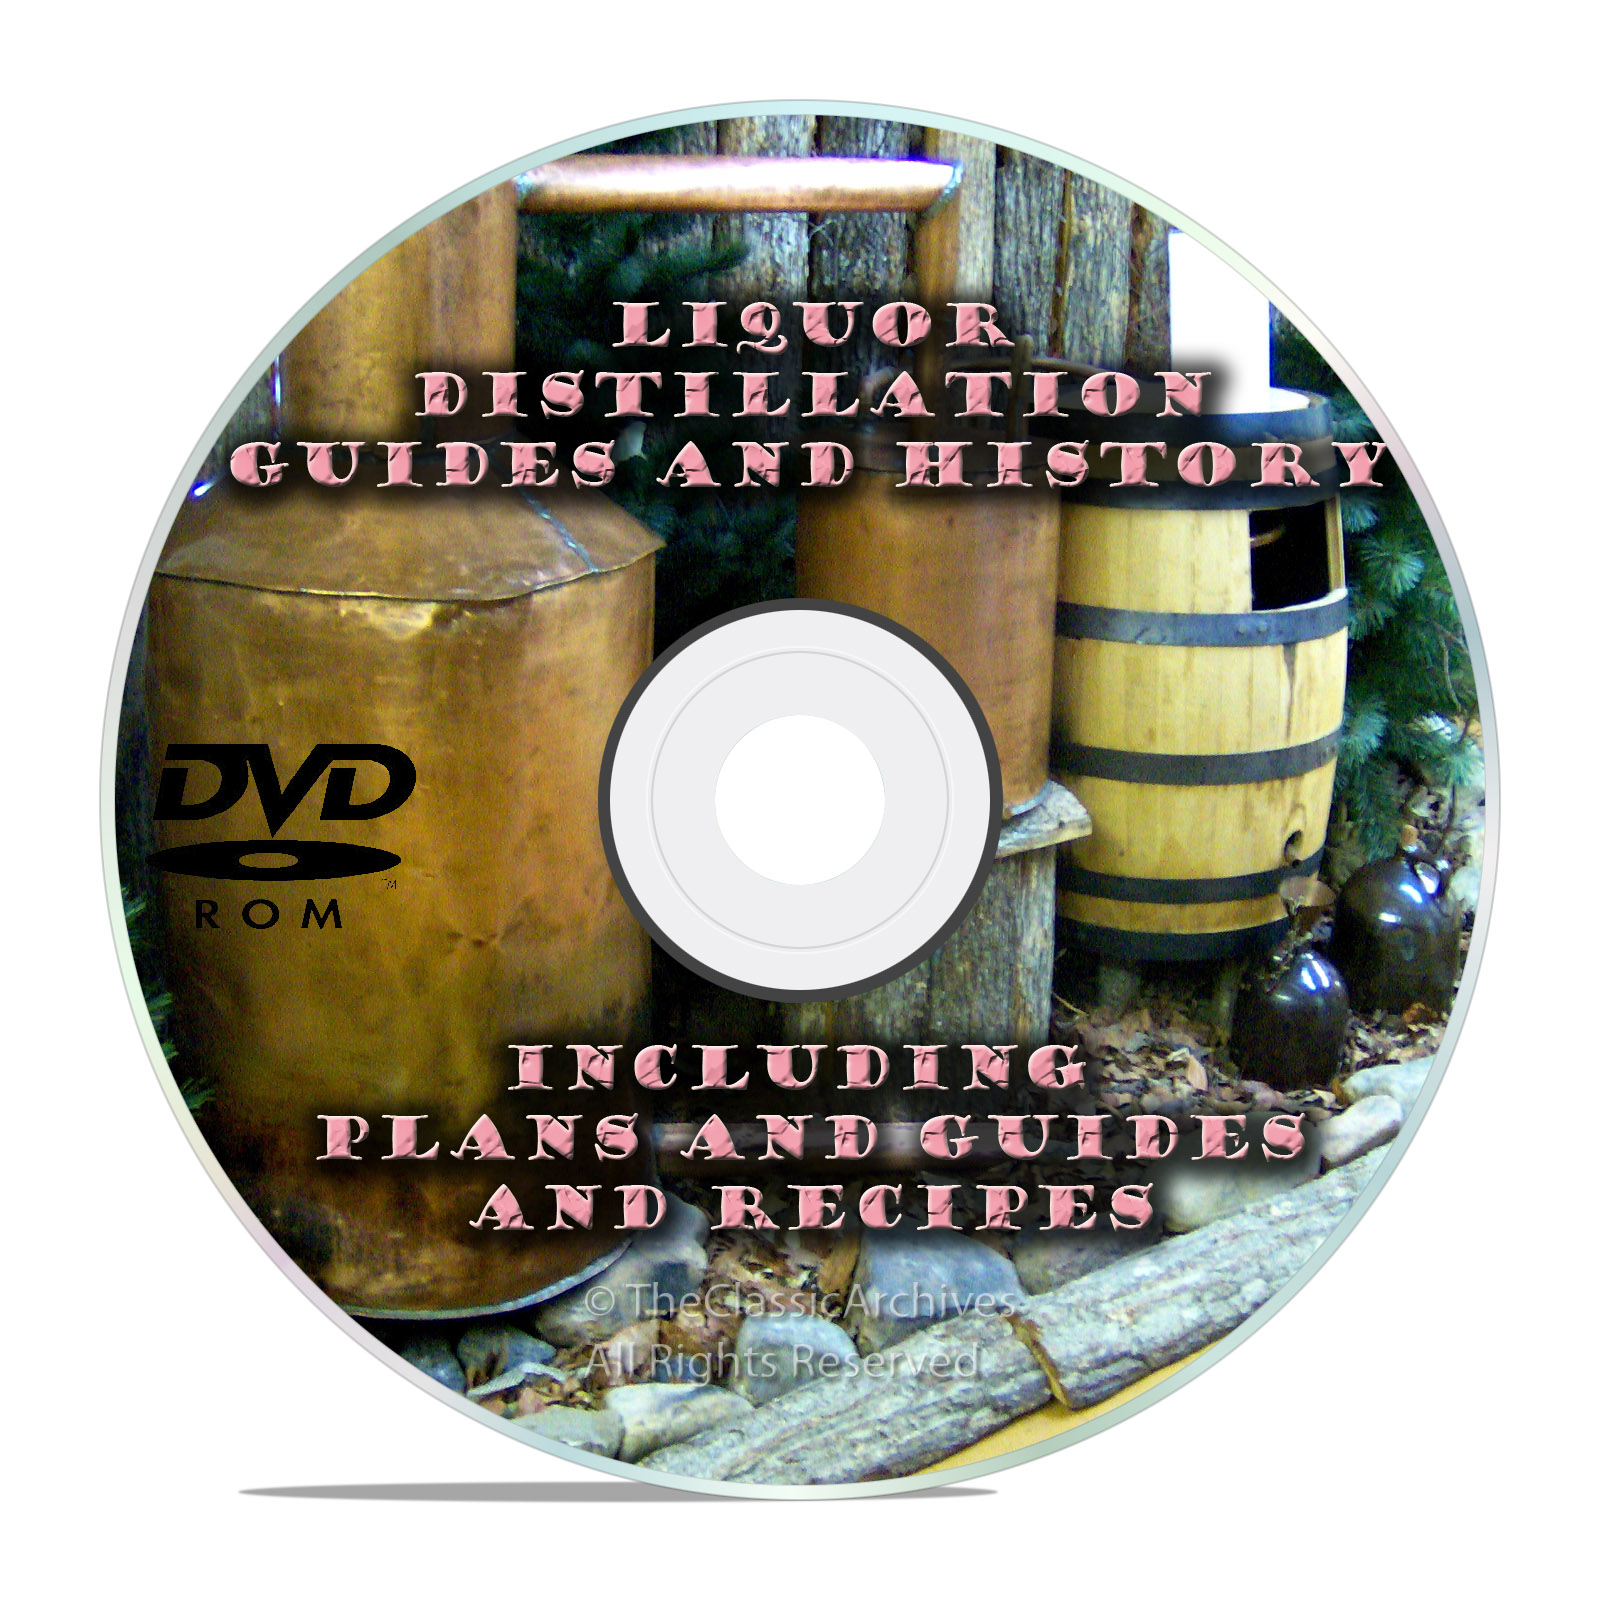 The Complete Distiller, Moonshine Still Plans and Guides on DVD-Snail Mail